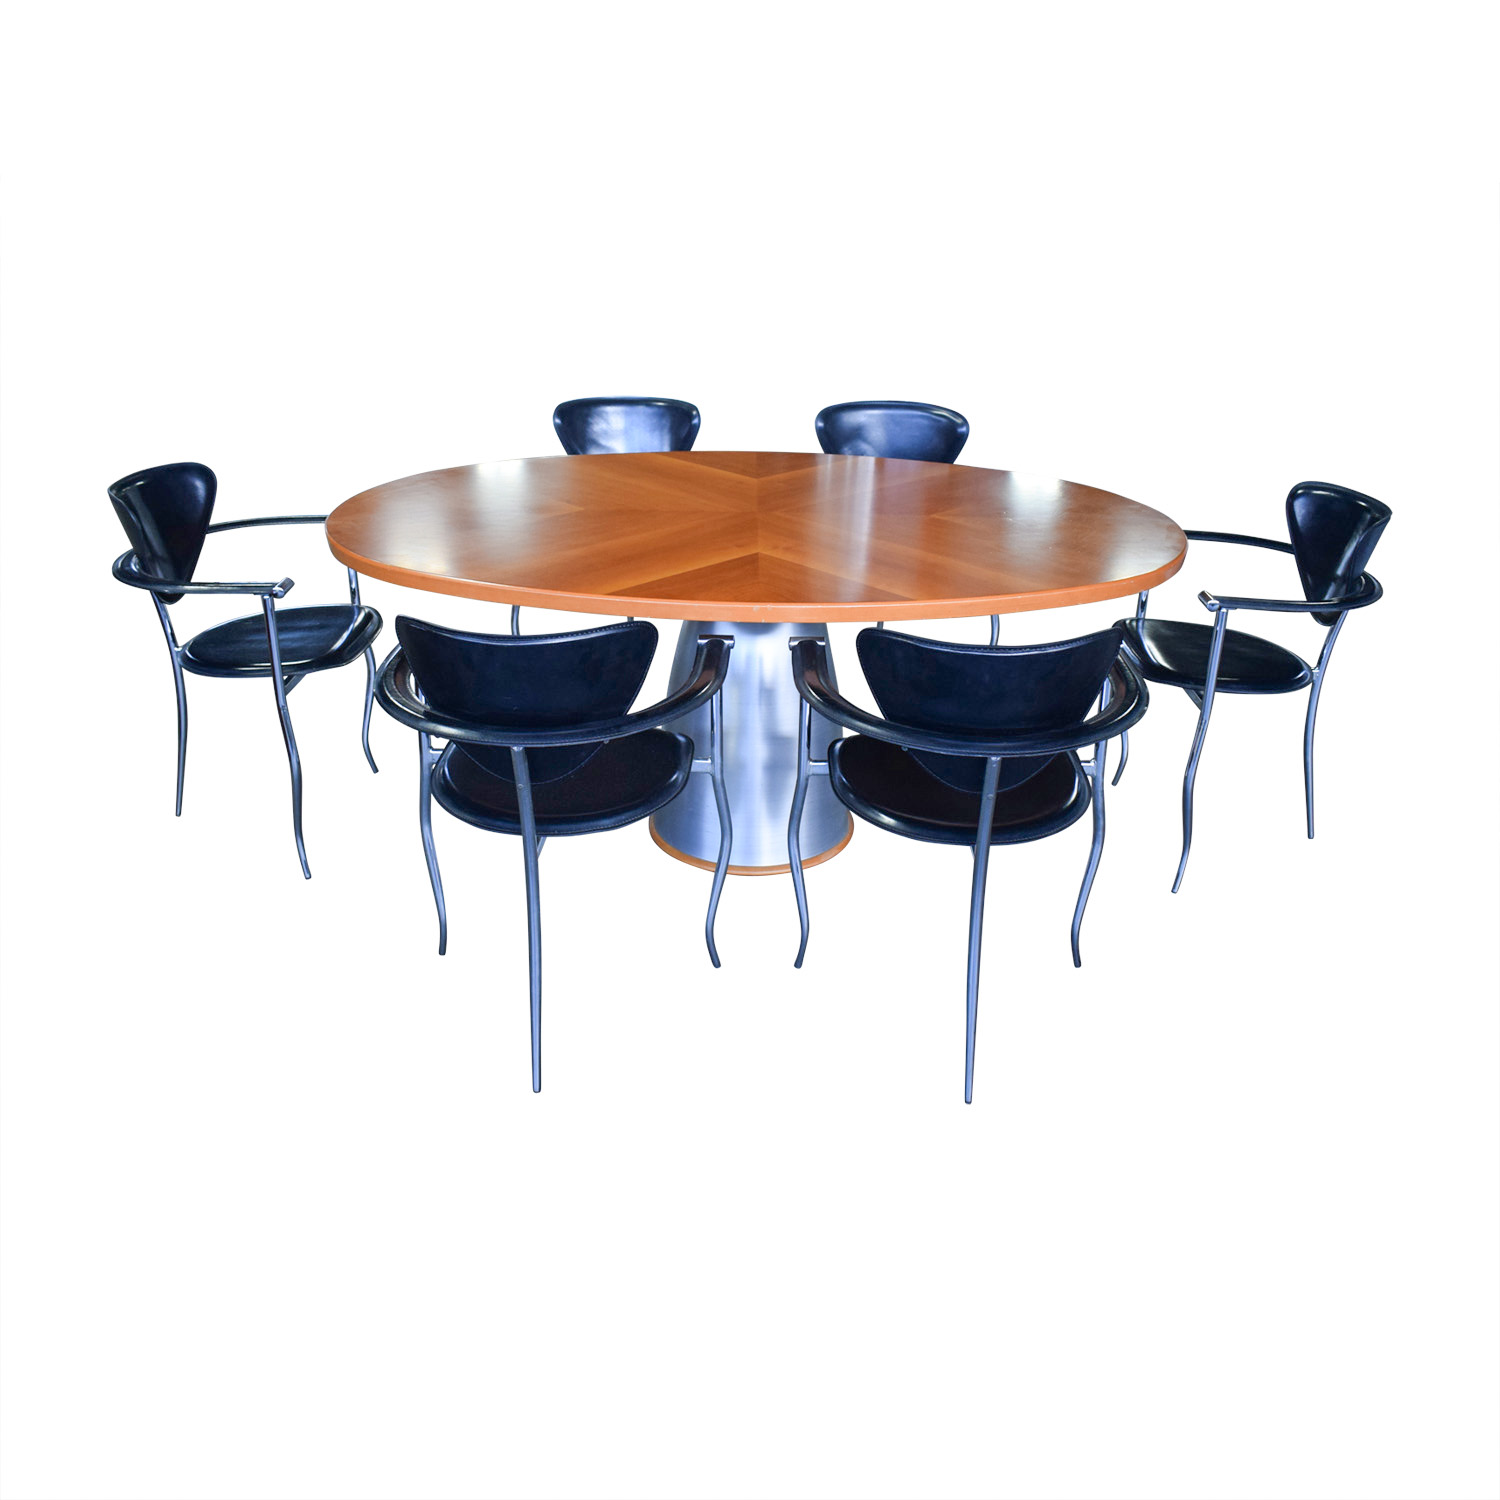 shop Cattelan Wood and Steel Table with Black Chairs Dining Set Cattelan Tables